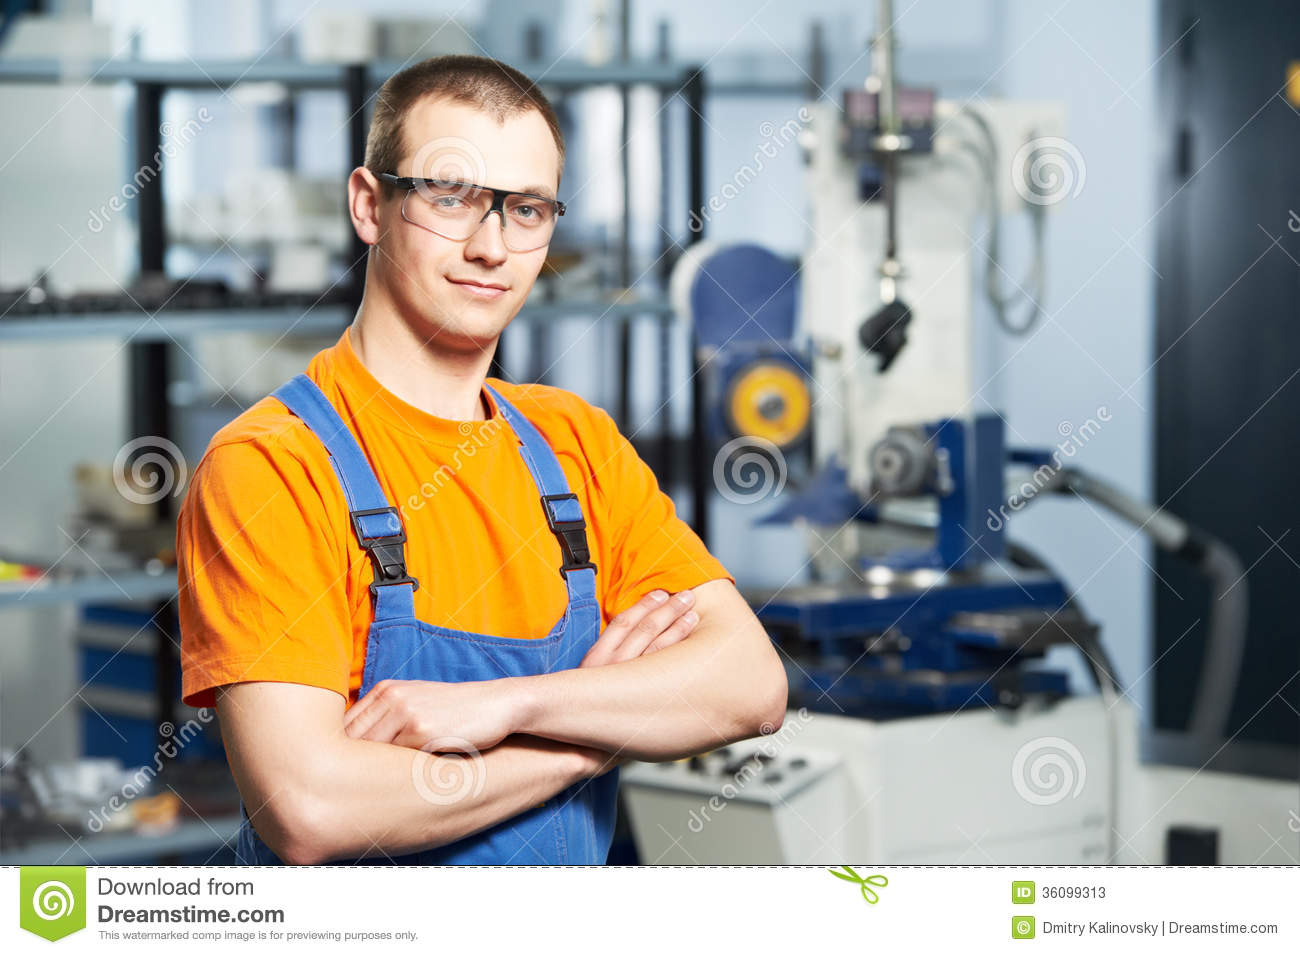 Portrait of experienced industrial worker